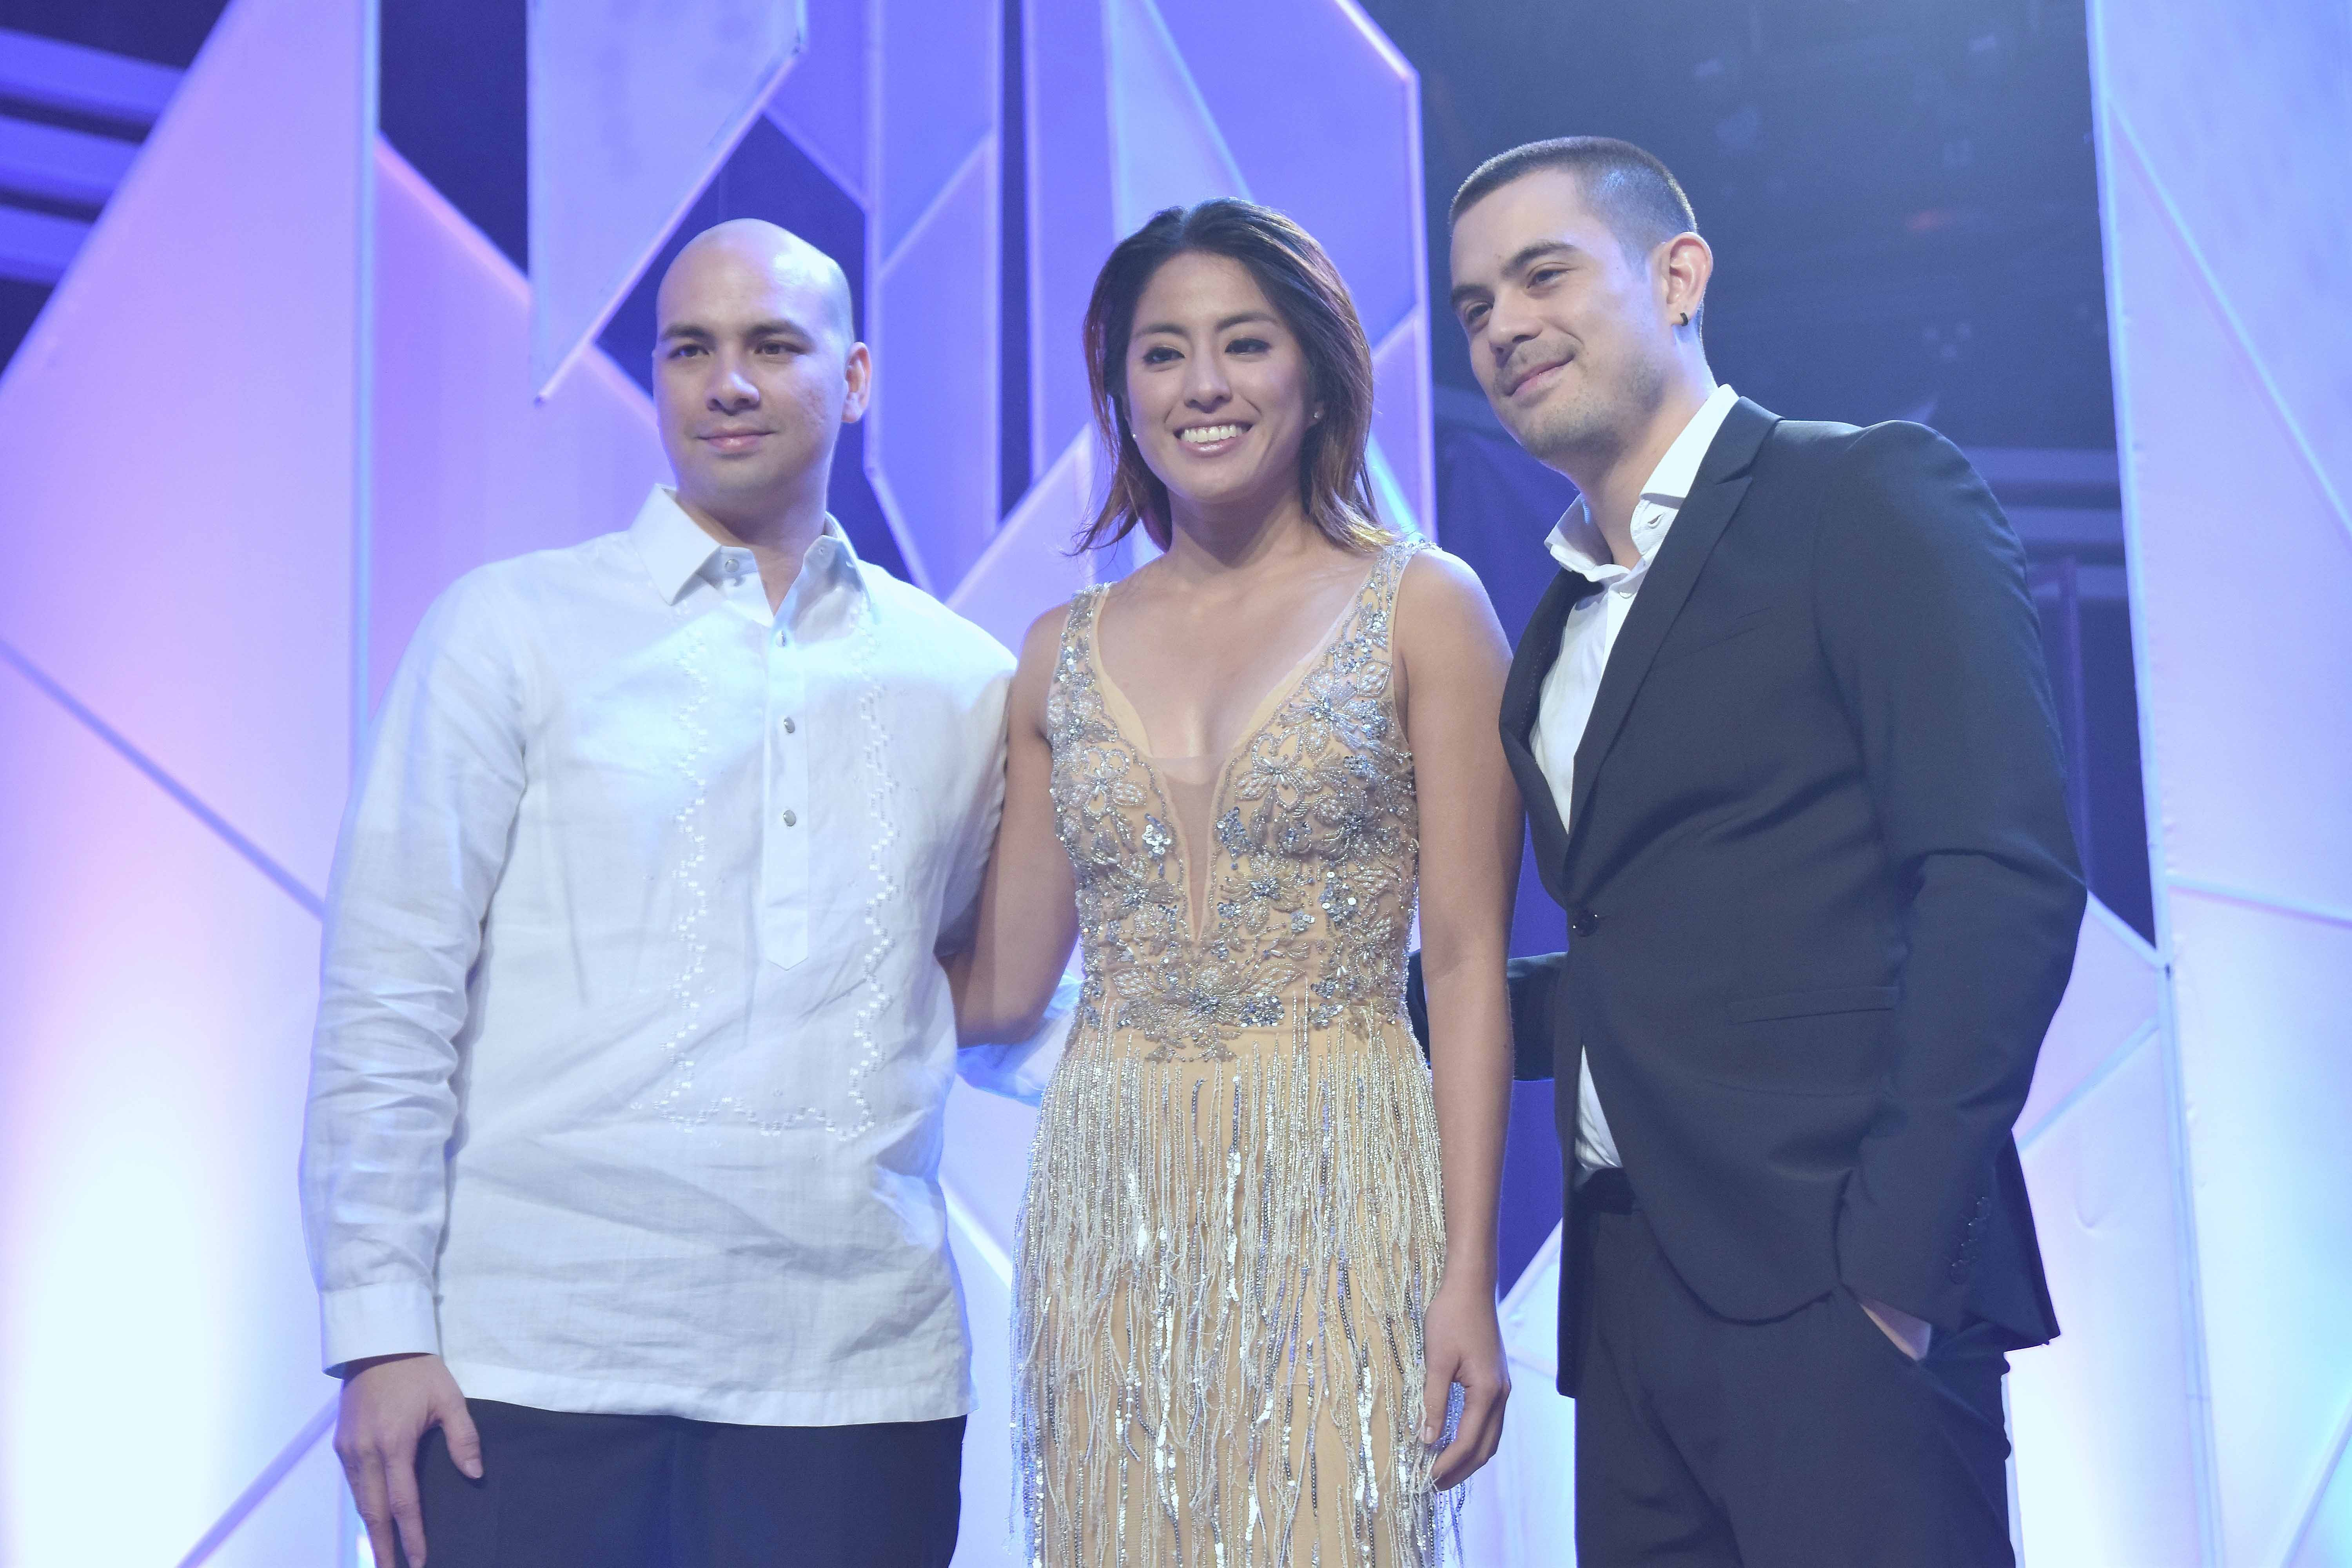 Program hosts Jamie Lopez and Chris Lopez with ABS-CBN host Gretchen Ho